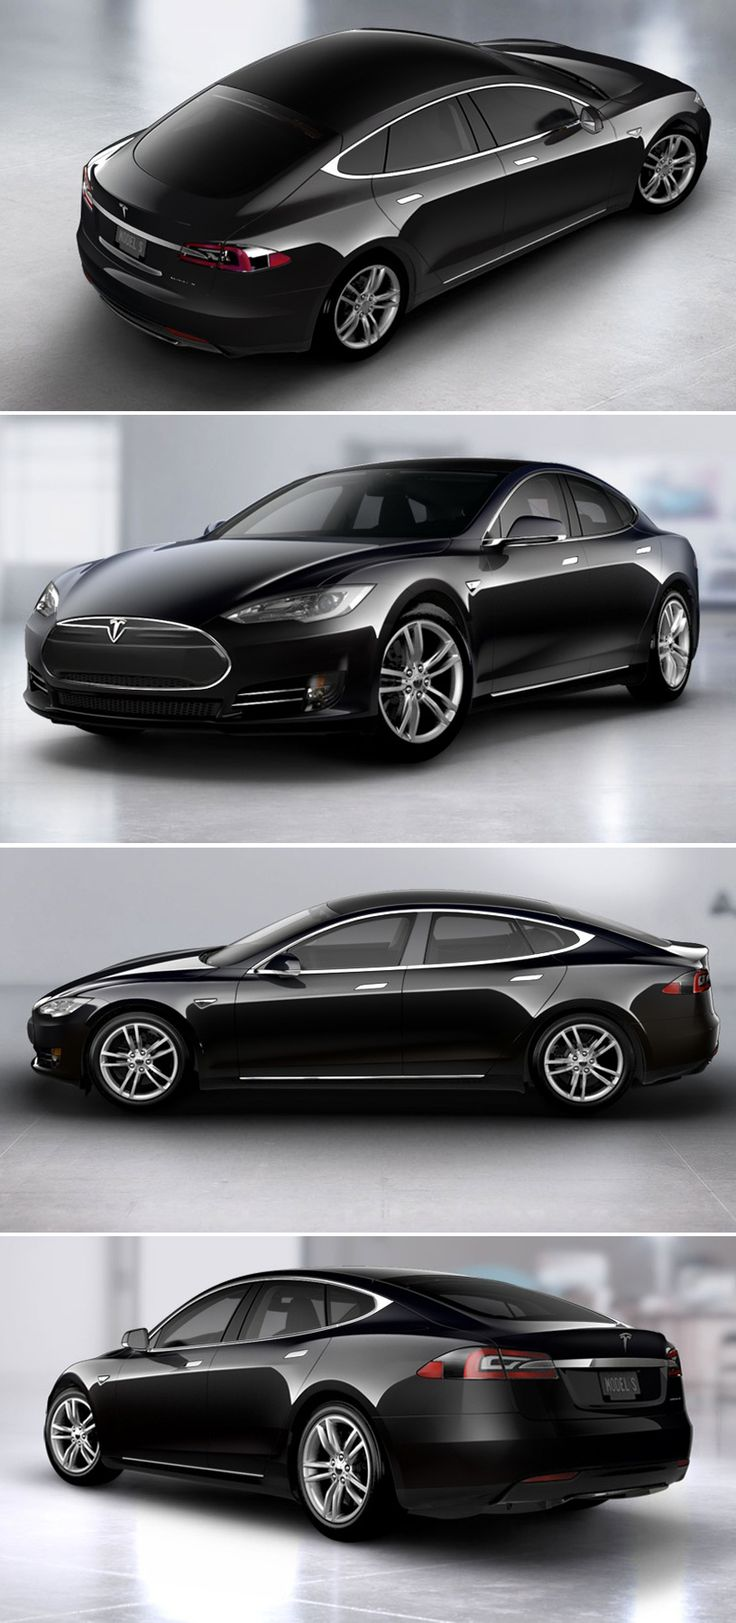 Tesla - Model S. Electric, smart. Properly done. #RePin by AT Social Media Marketing - Pinterest Marketing Specialists ATSocialMedia.co.uk